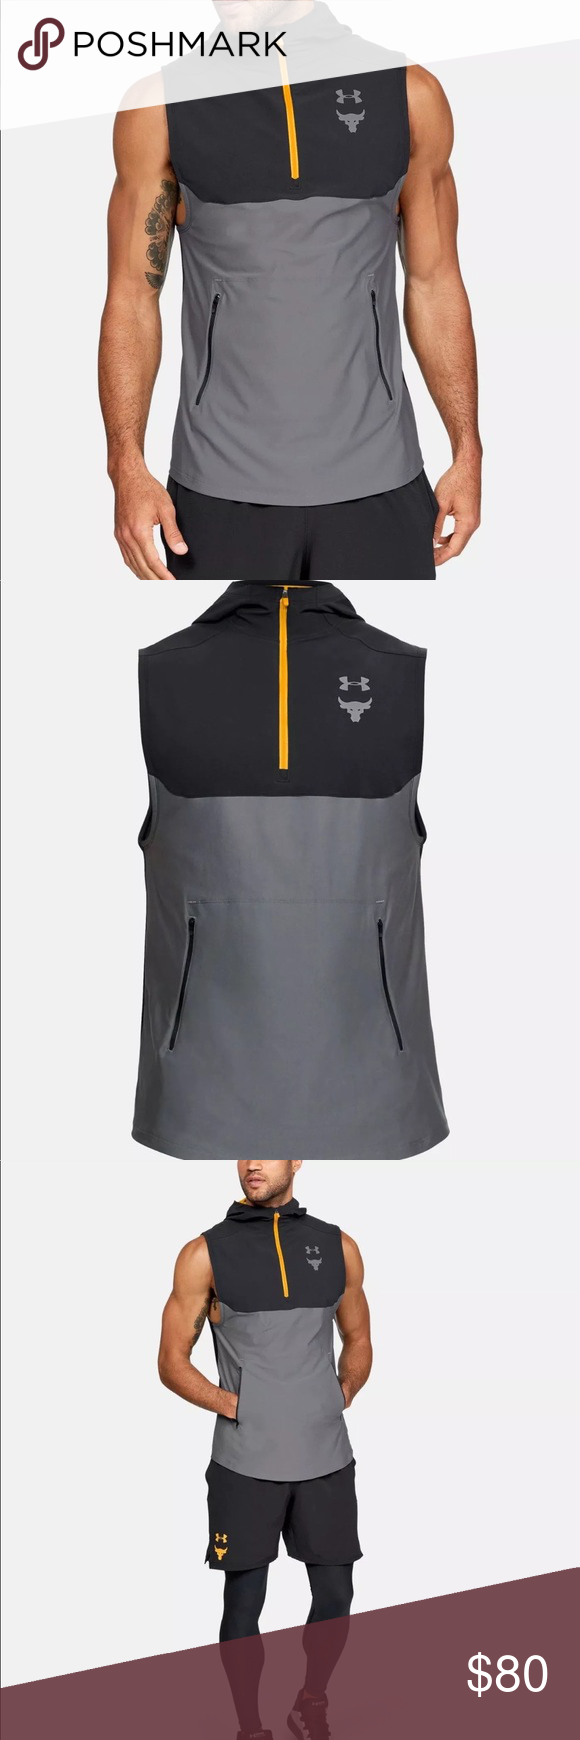 6df12ae1fb675 Under Armour Project Rock Vanish Sleeveless Hoodie Fitted  Next-to-skin  without the squeeze. ·UA Microthread technology in the fabric dries faster